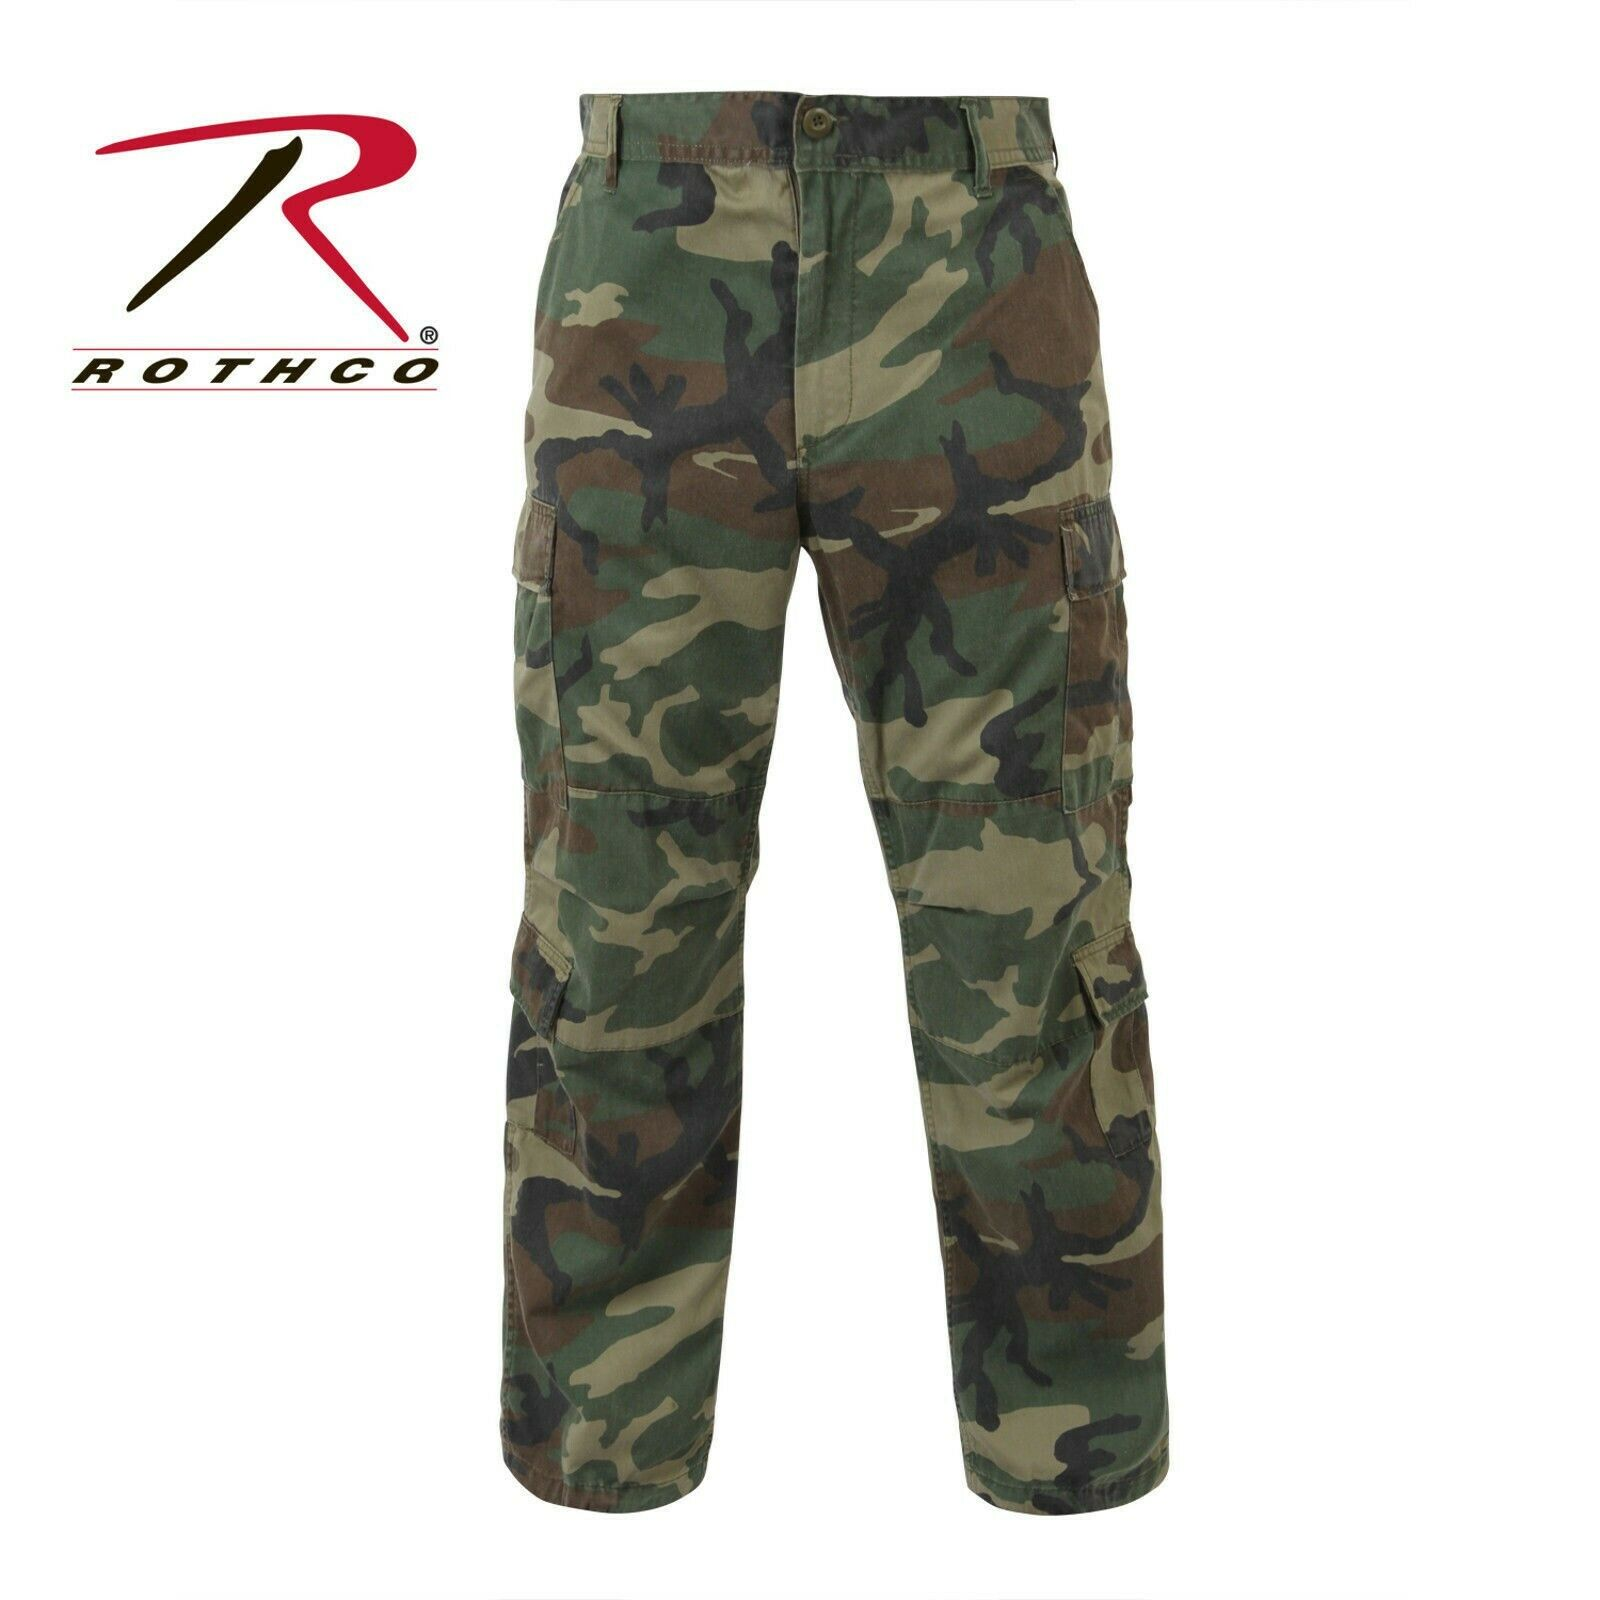 Vintage Woodland Camouflage Paratrooper Pants Military BDU Fatigues redhco 2586